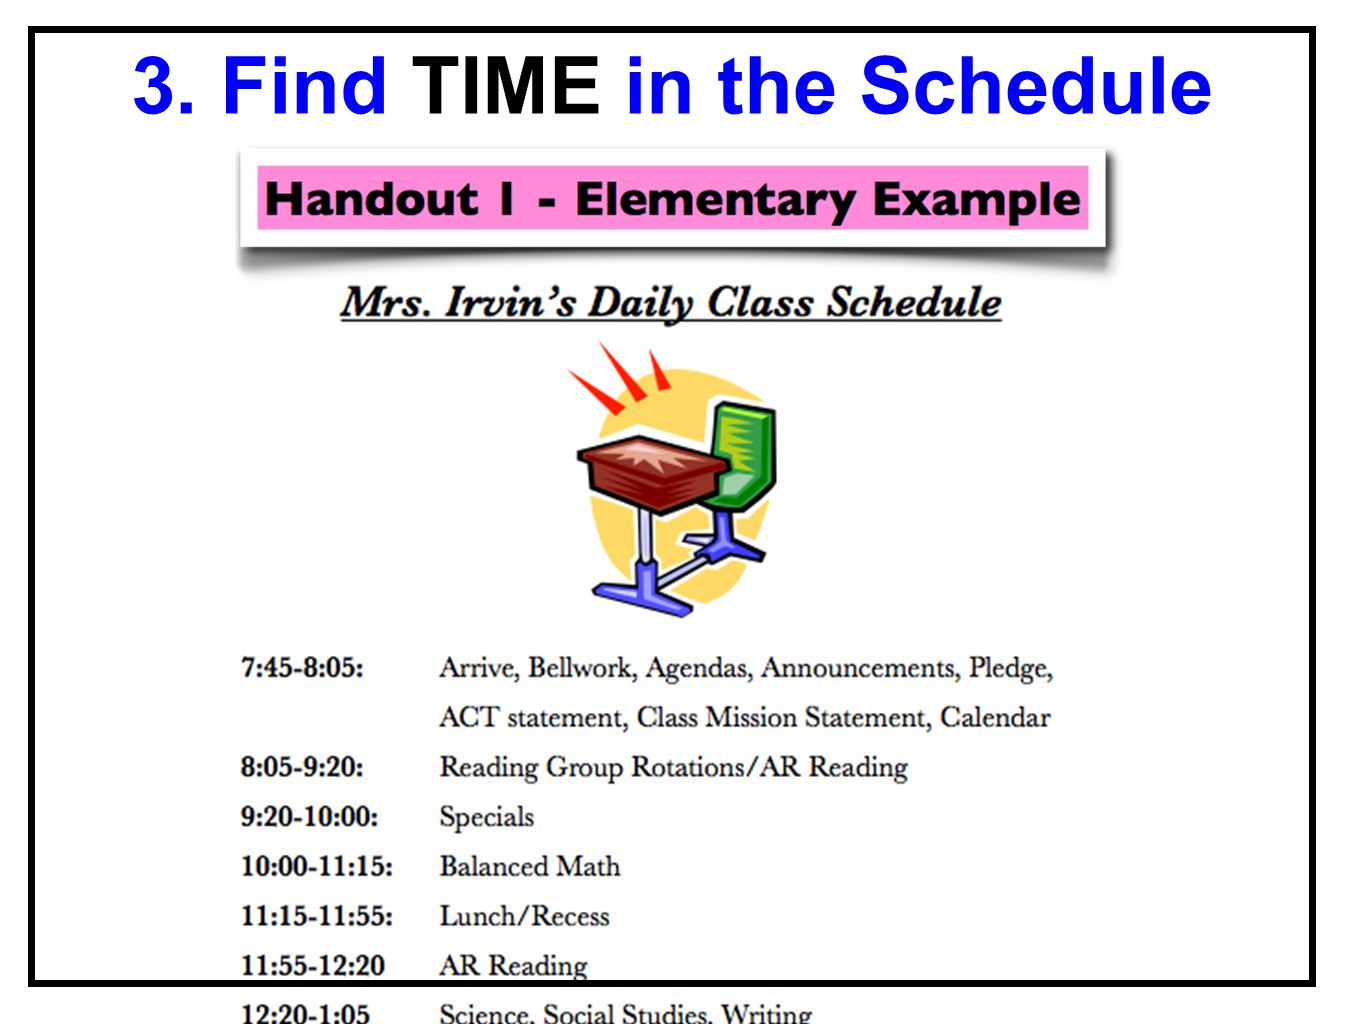 3. Find TIME in the Schedule